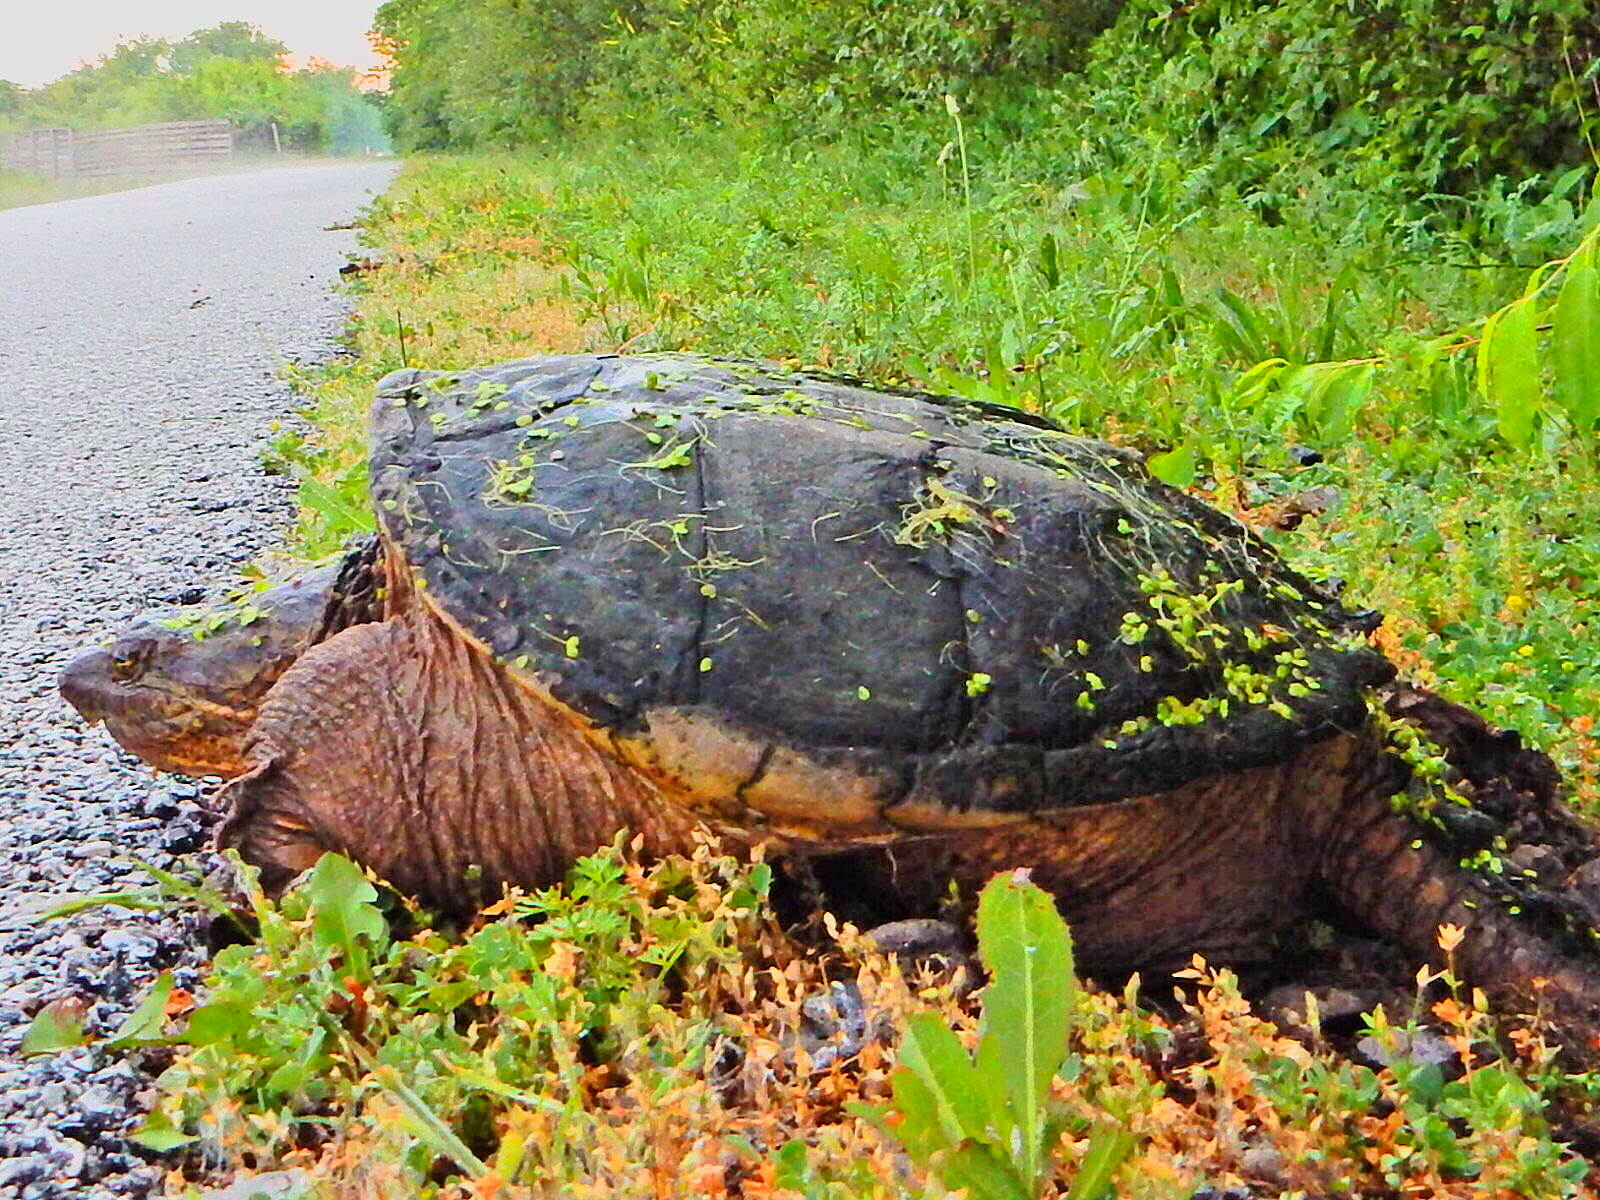 Pennsy Greenway Just north of Centennial Park.  I hope he made it across the trail, but I was not about to help this prehistoric monster(Common Snapping Turtle).